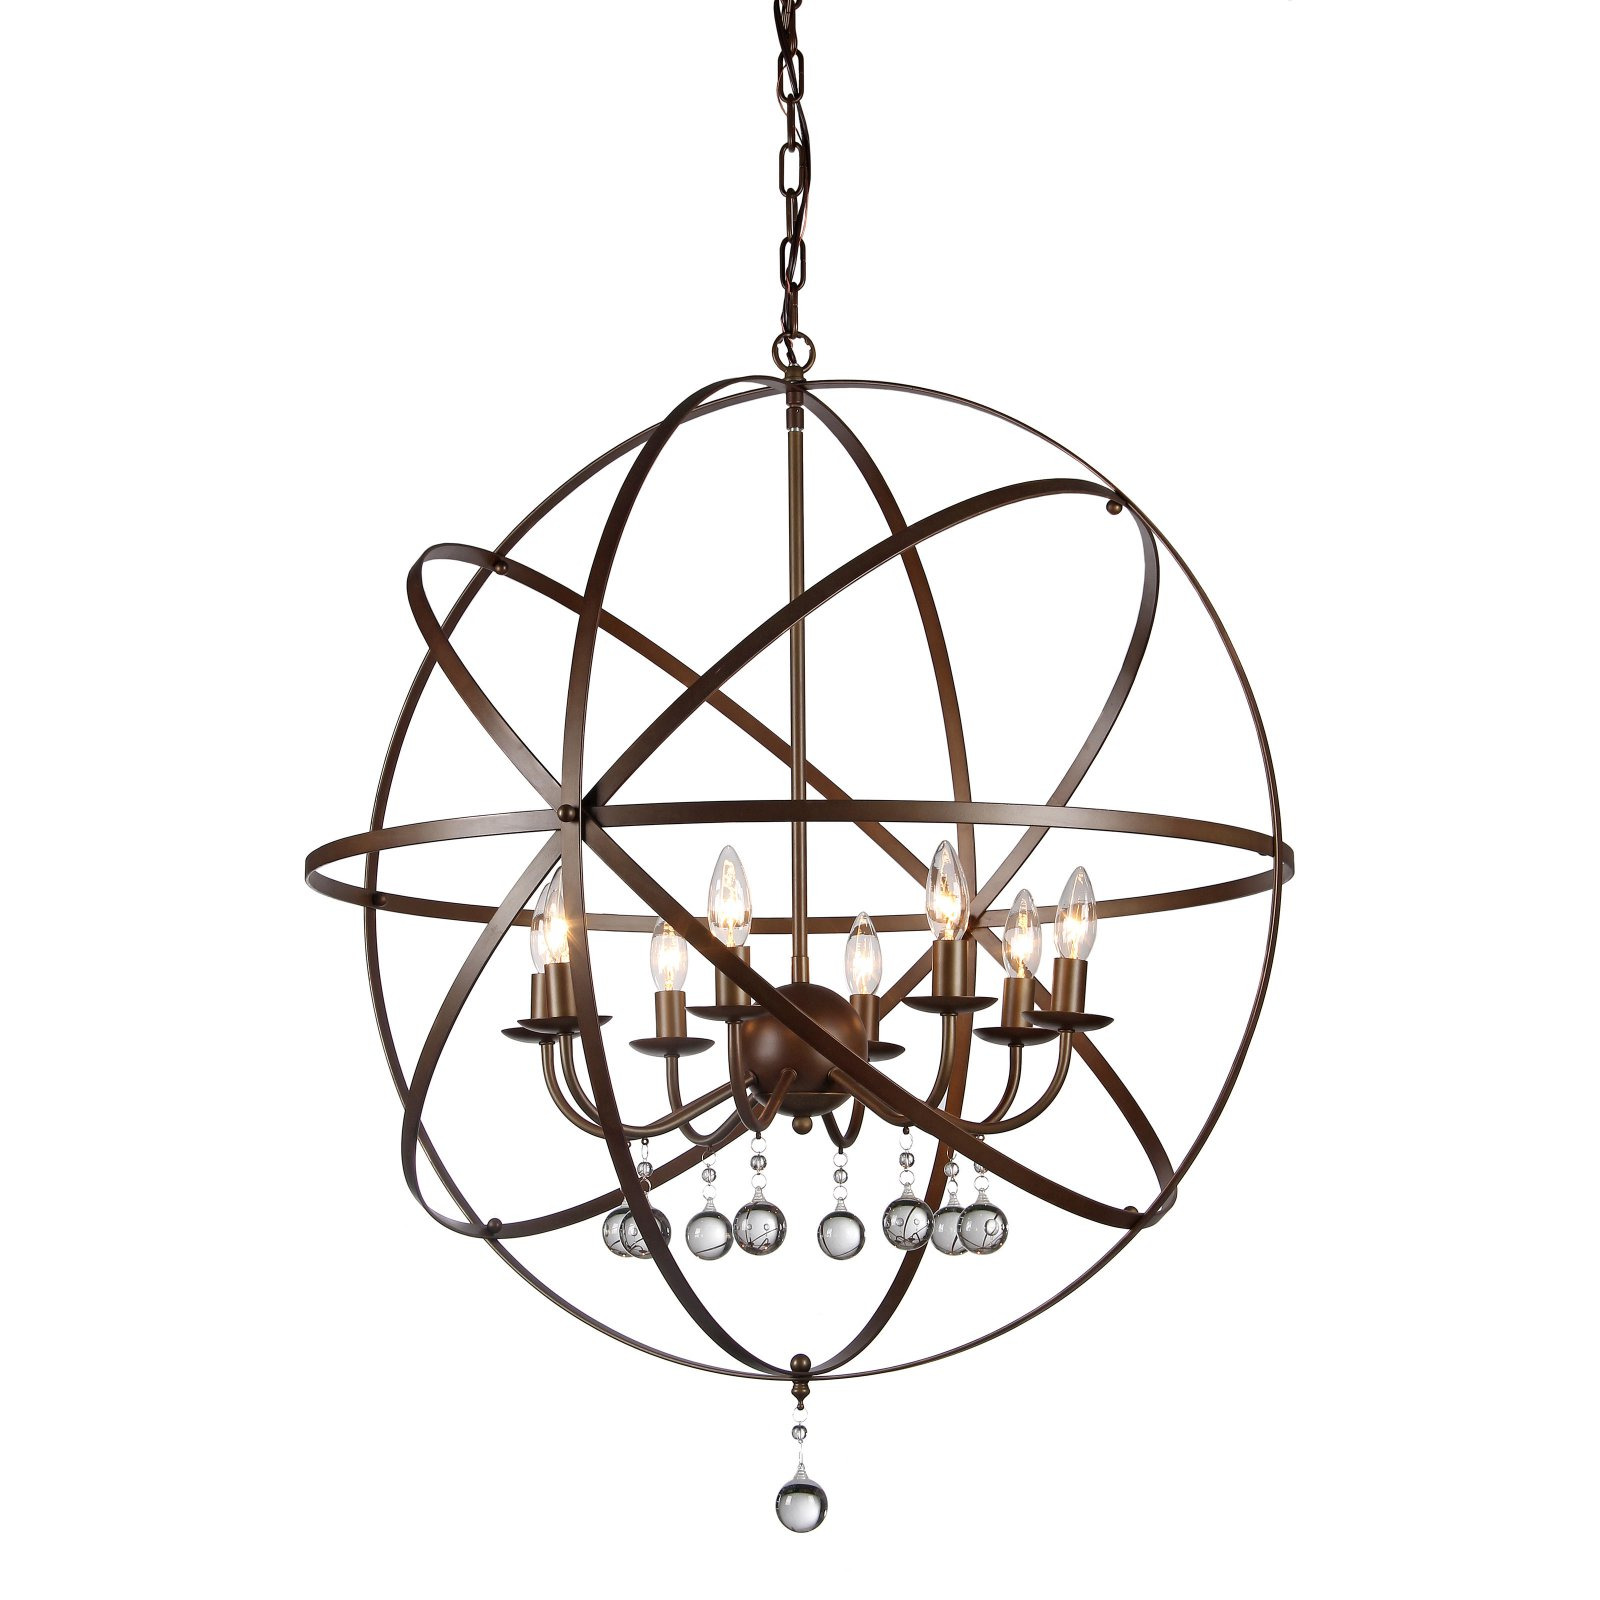 Warehouse of Tiffany Jossie 8 Light Candle-Style Chandelier